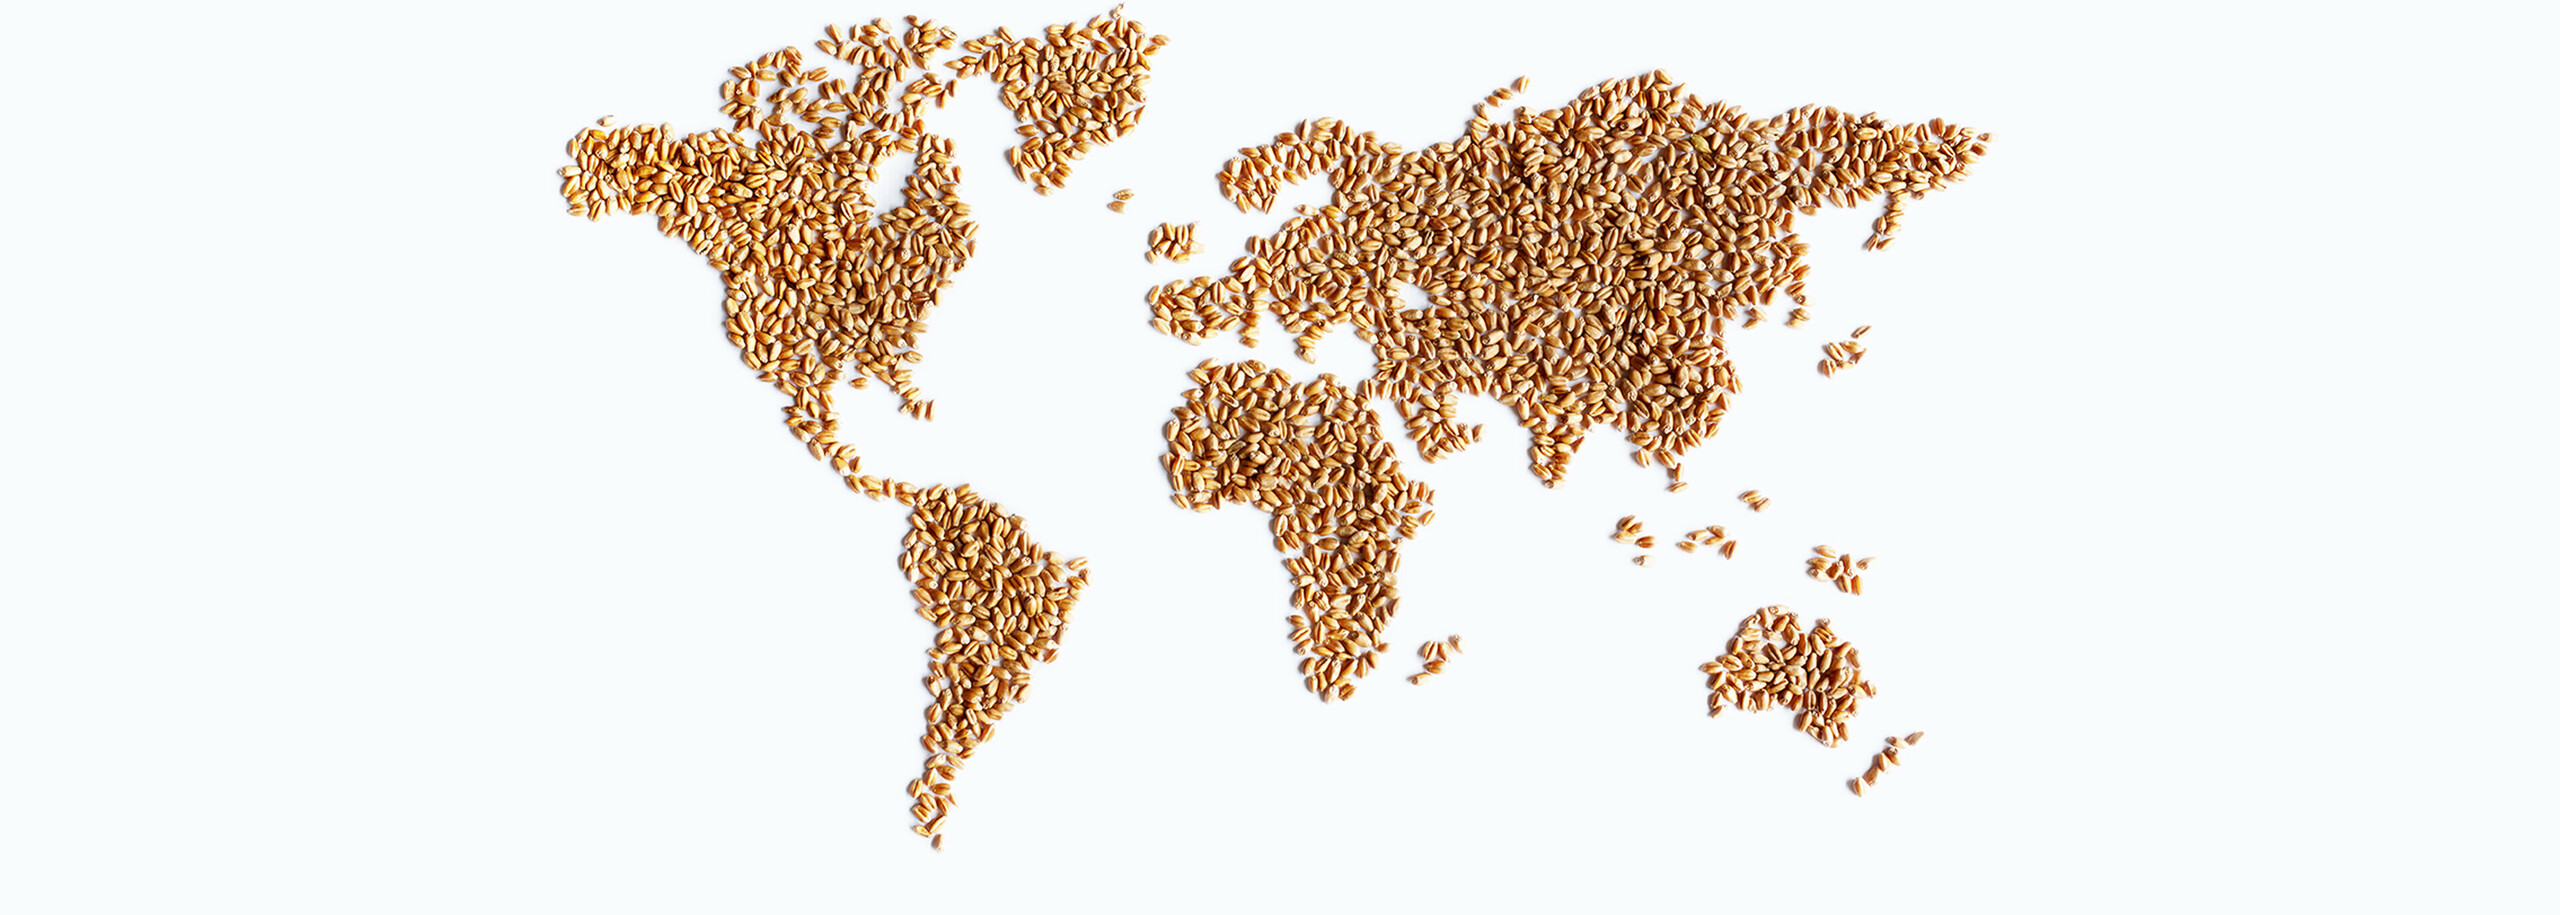 Picture world map made of grain